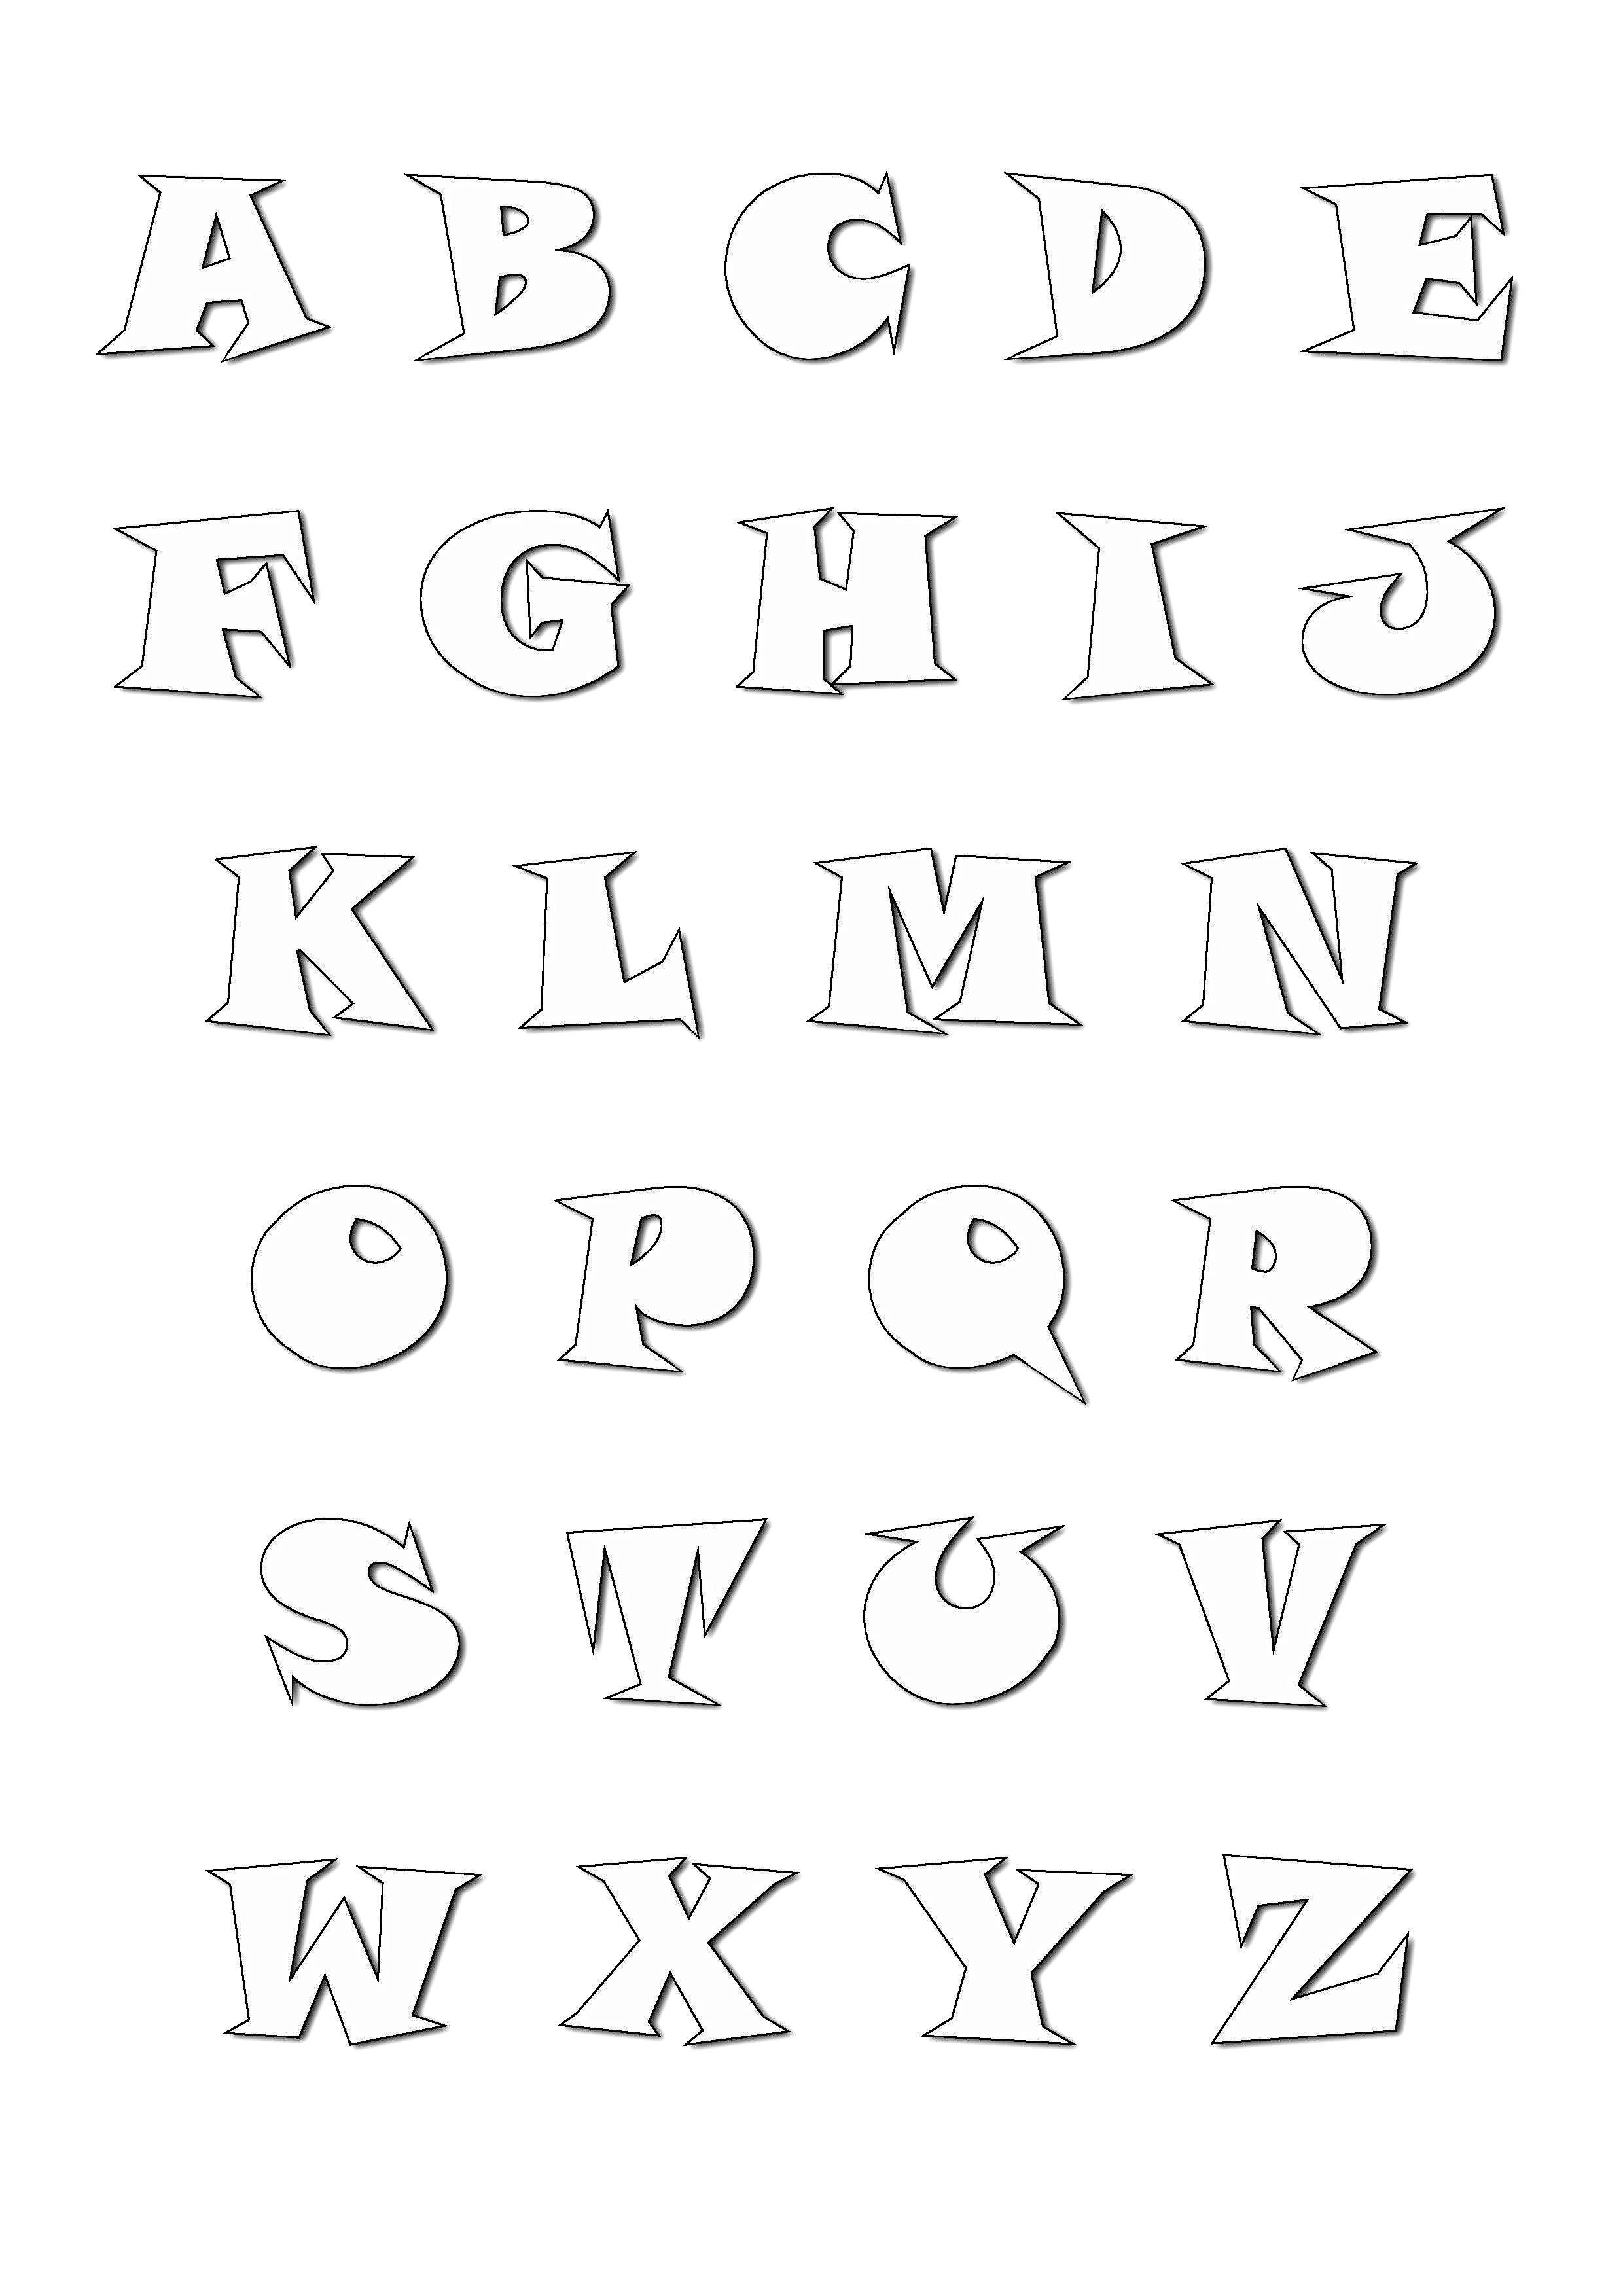 Alphabet Worksheet With Cartoon Style From The Gallery